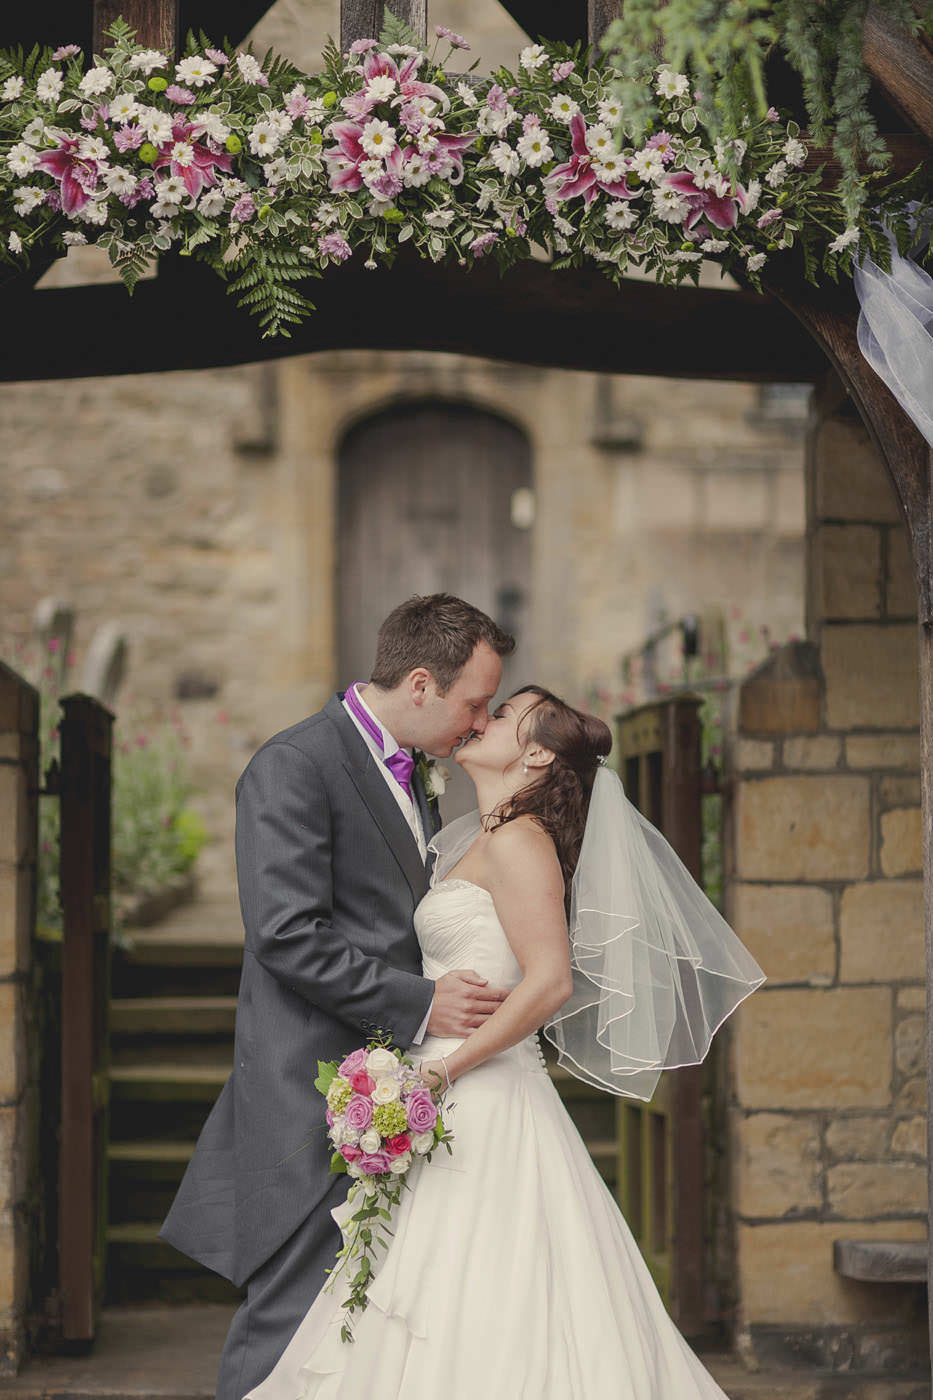 chrissarah walled garden midhurst wedding photographer 0065